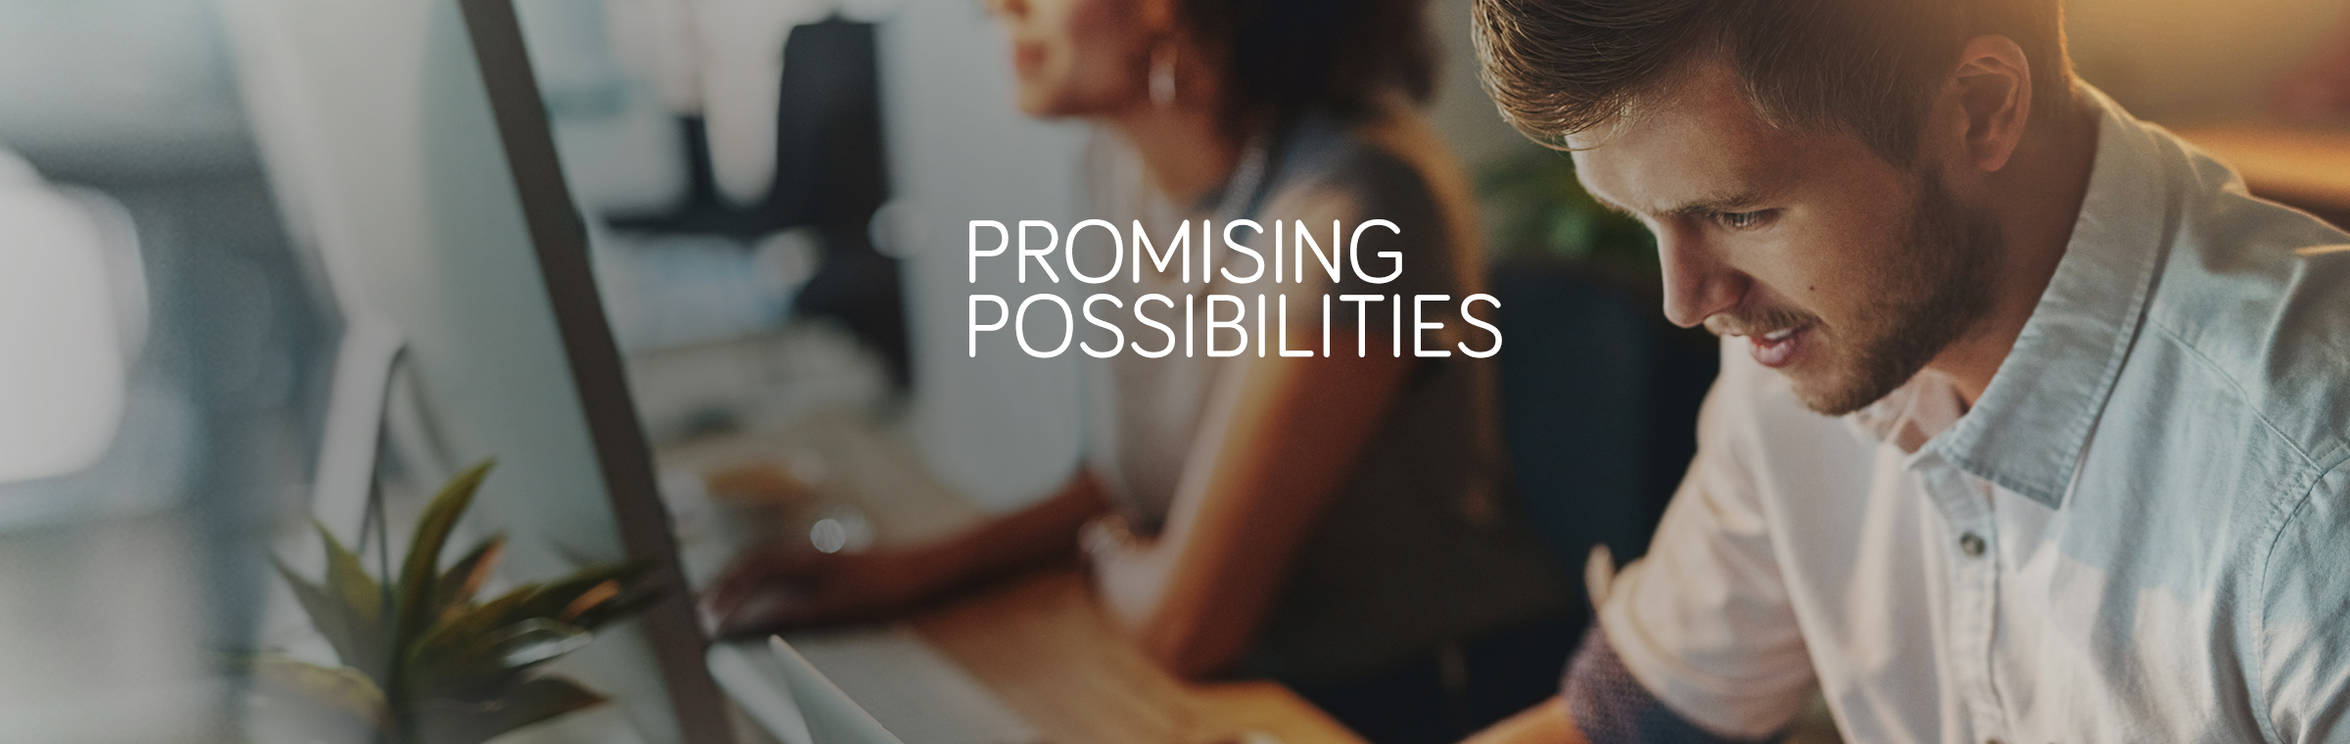 "People working on computers. Tag line reads ""Promising possibilities"""